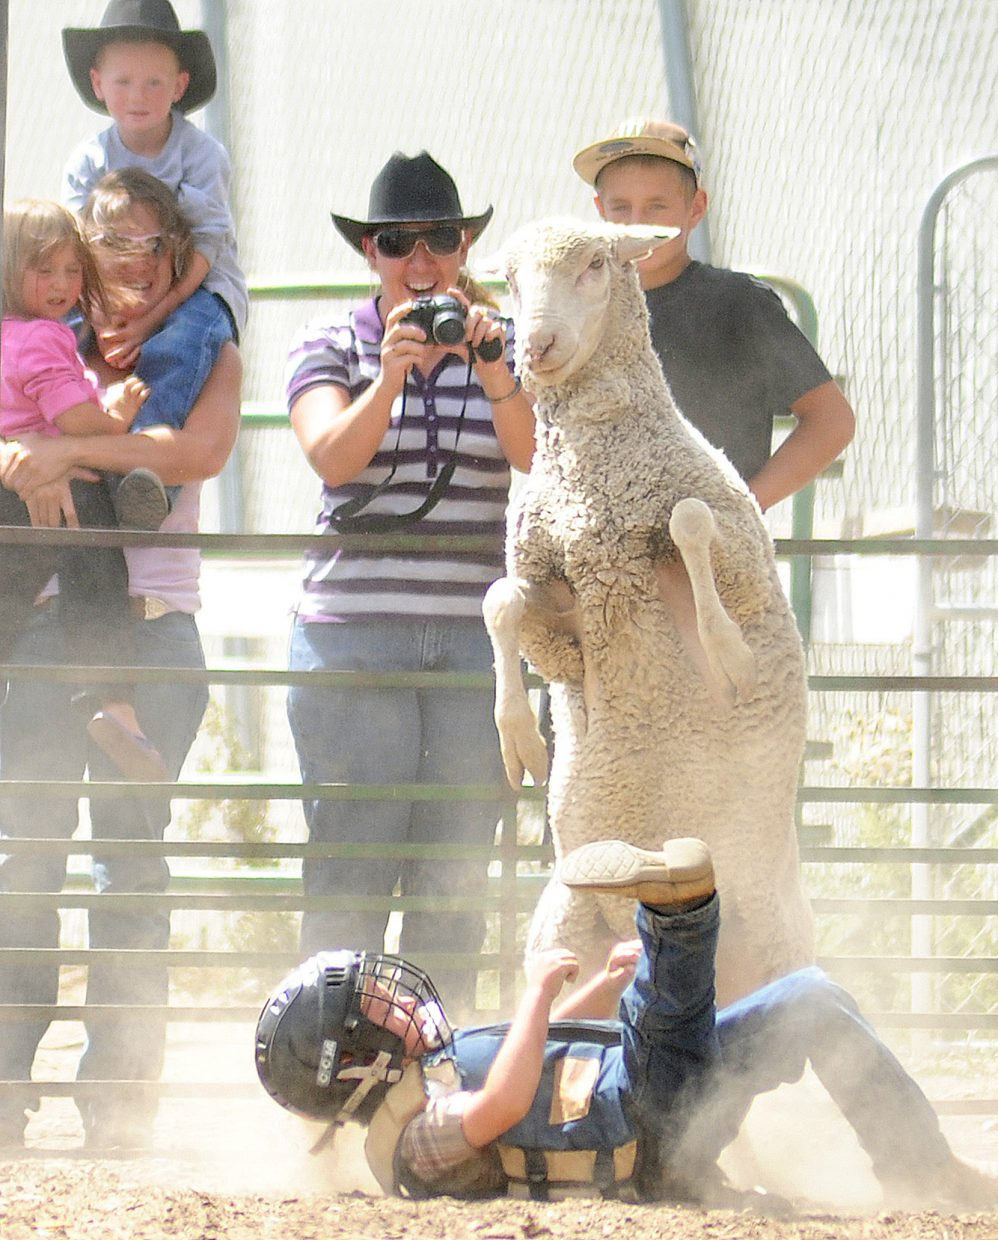 Dylan Brady lands hard after his ride in the mutton bustin' competition at the Routt County Fair in Hayden on Sunday.